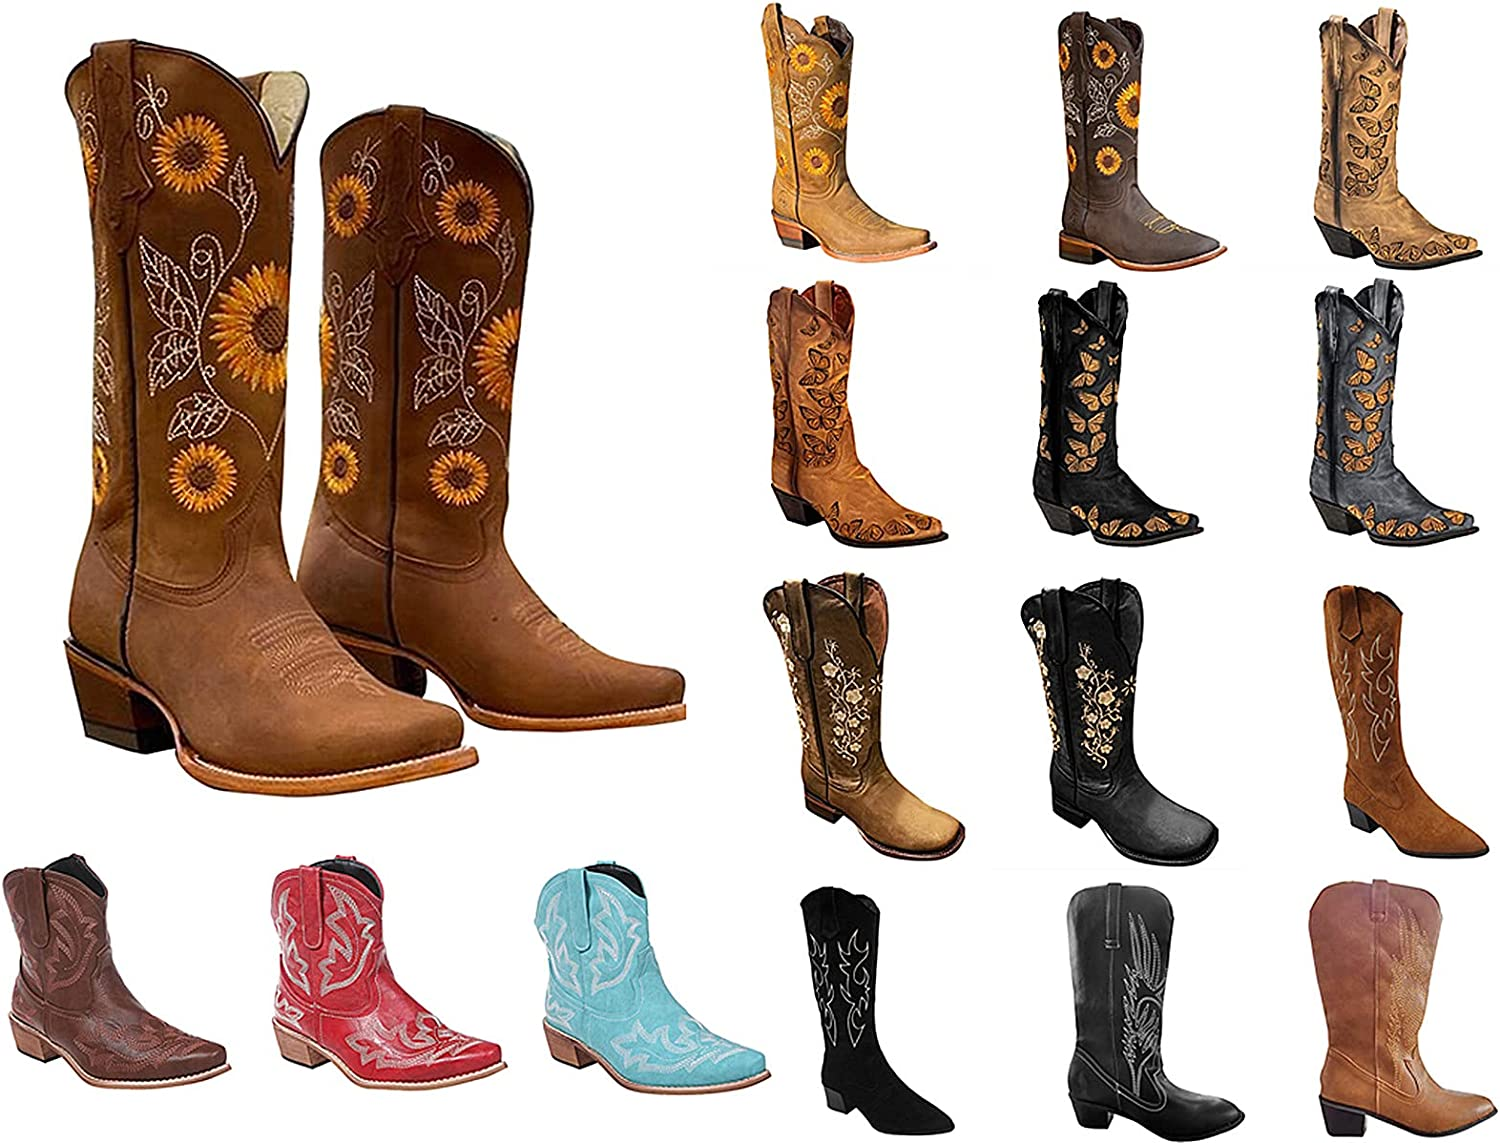 Cowboy Boots For Womens Riley Western Boot Gaucho Boot Embroidery Zip Pointed Toe Chunky Stacked Mid-Calf Booties